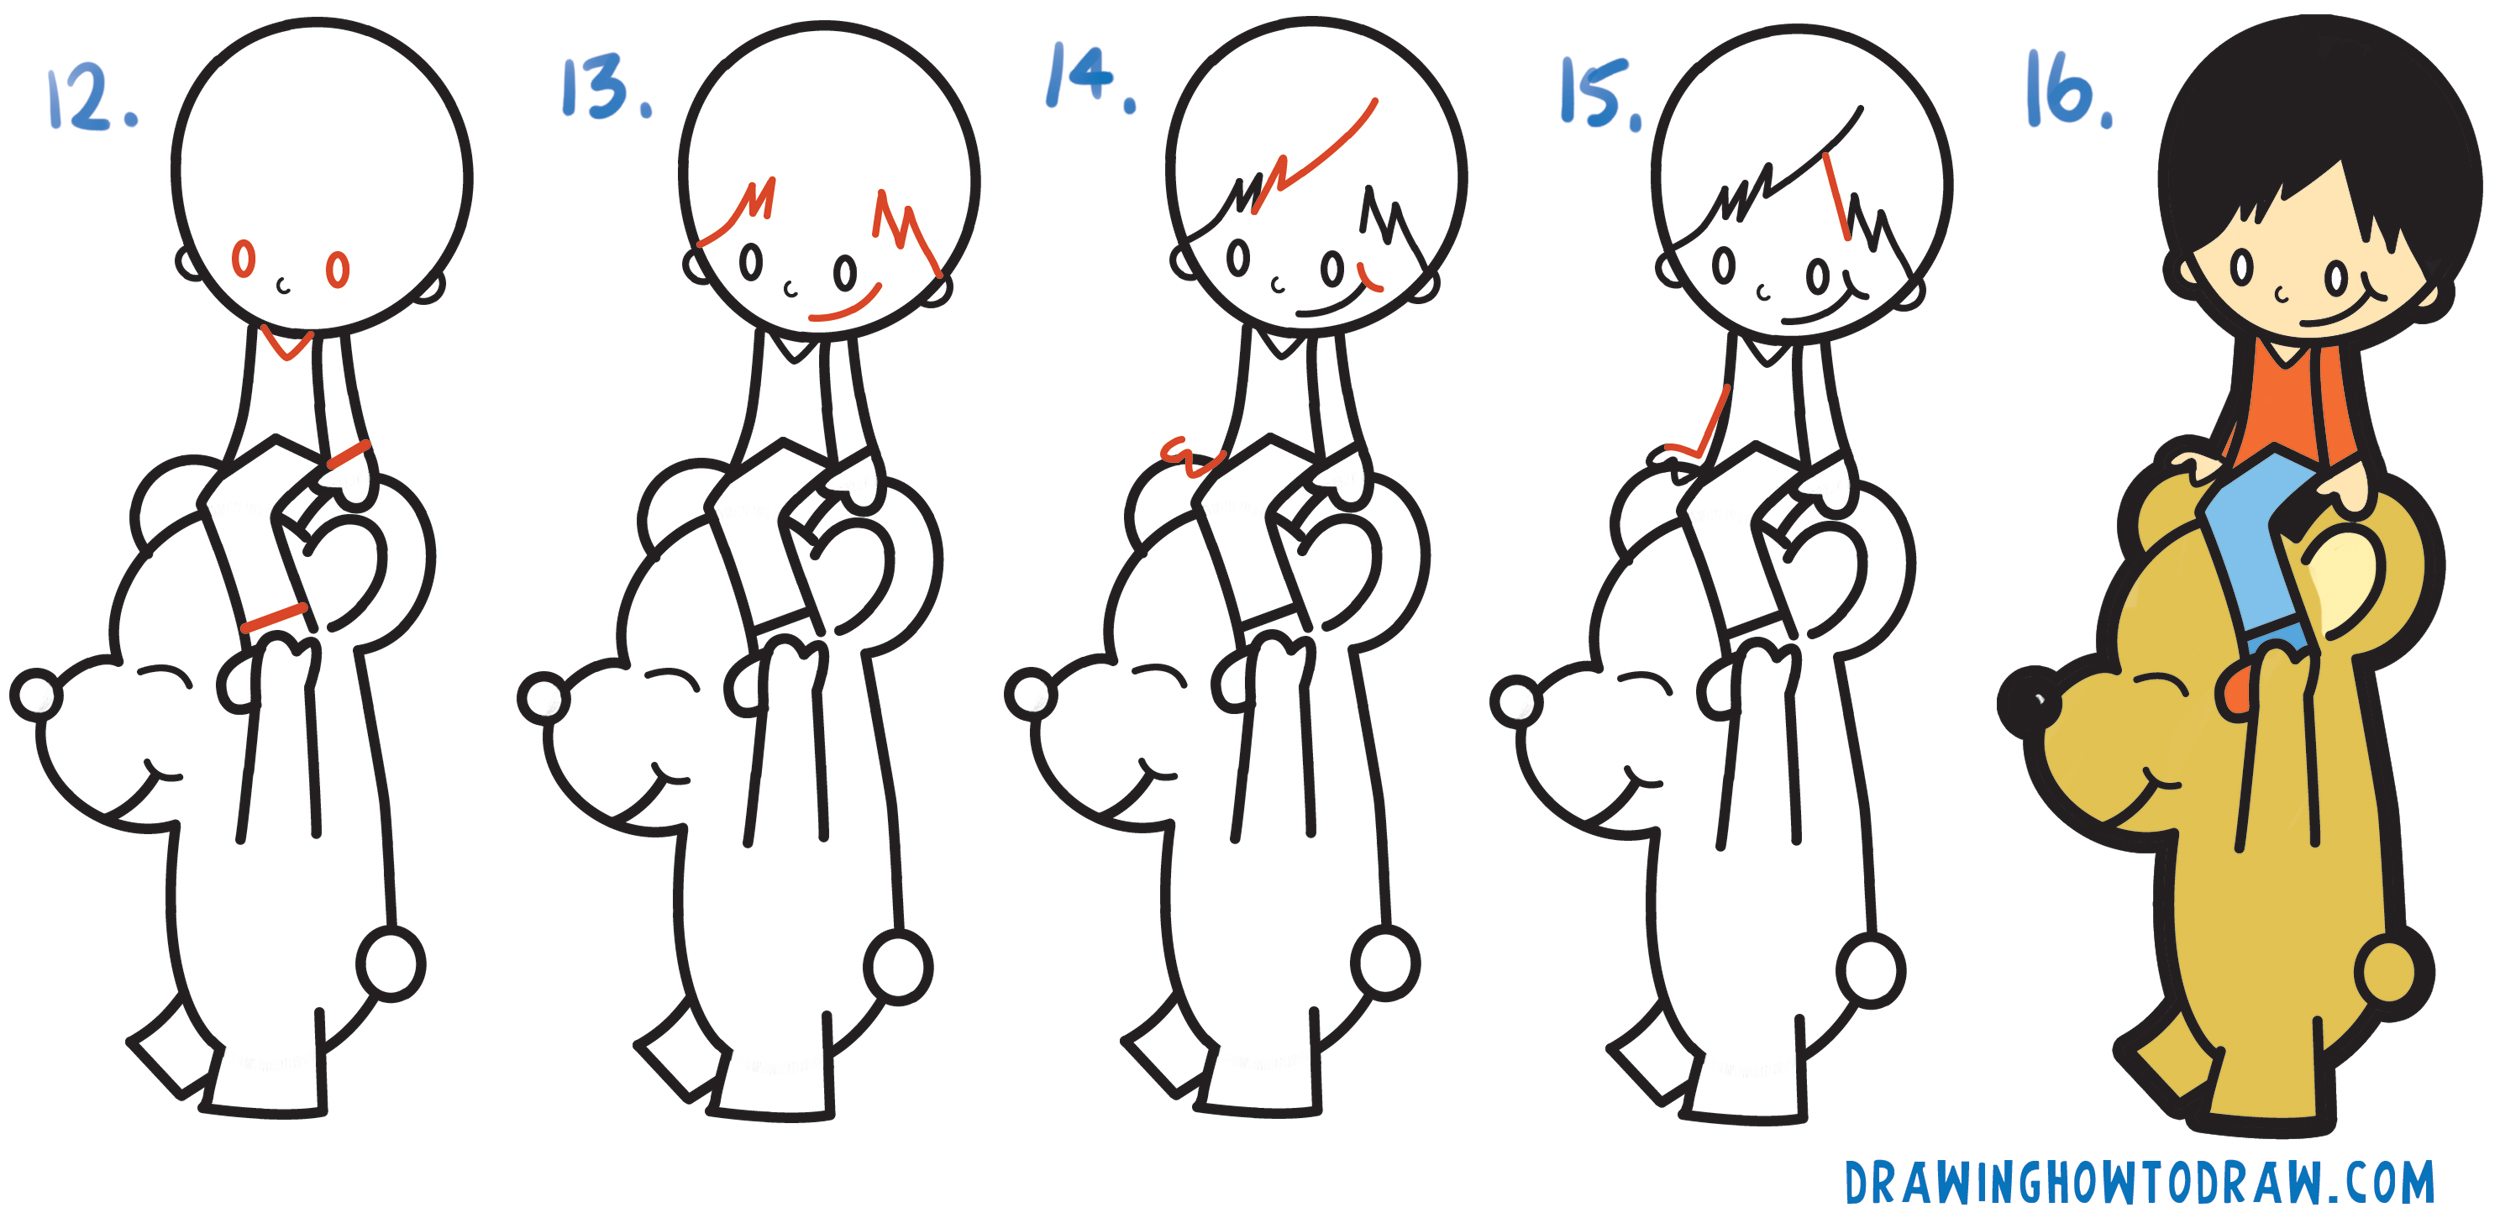 Learn How to Draw a Cartoon Boy Riding a Cartoon Bear from a Question Mark Simple Steps Drawing Lesson for Children and Beginners